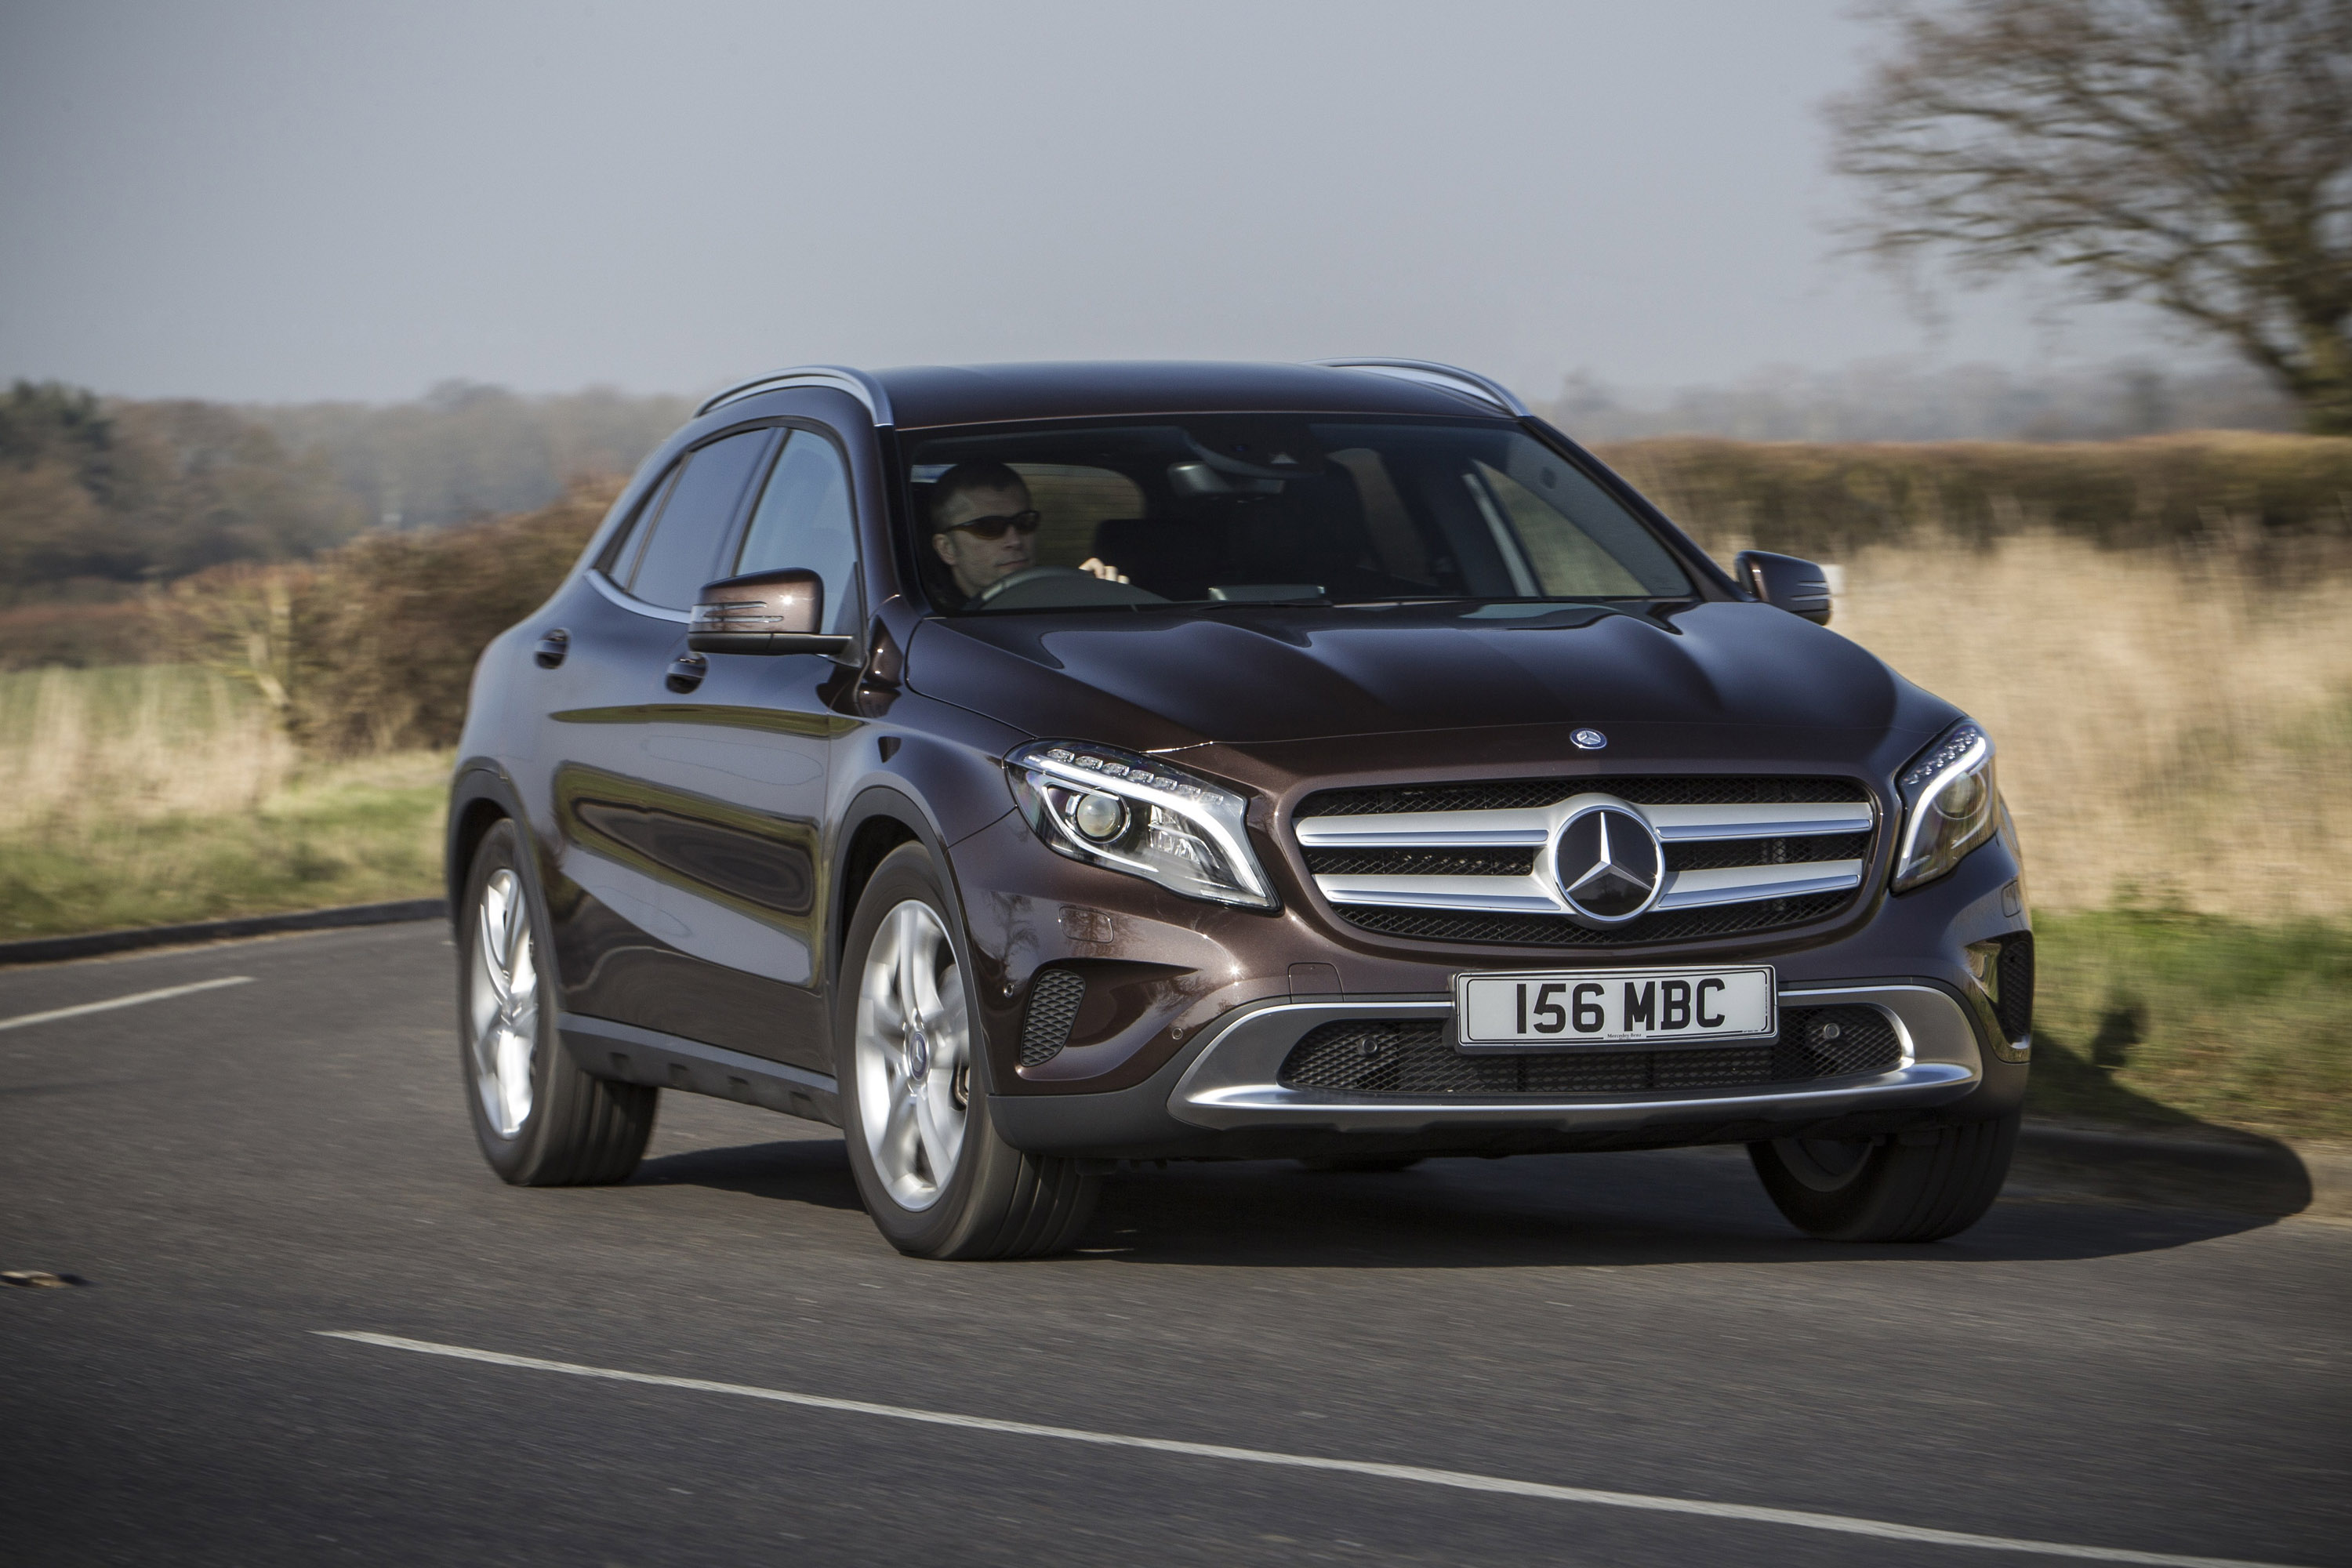 2015 mercedes benz gla uk version hd pictures. Black Bedroom Furniture Sets. Home Design Ideas